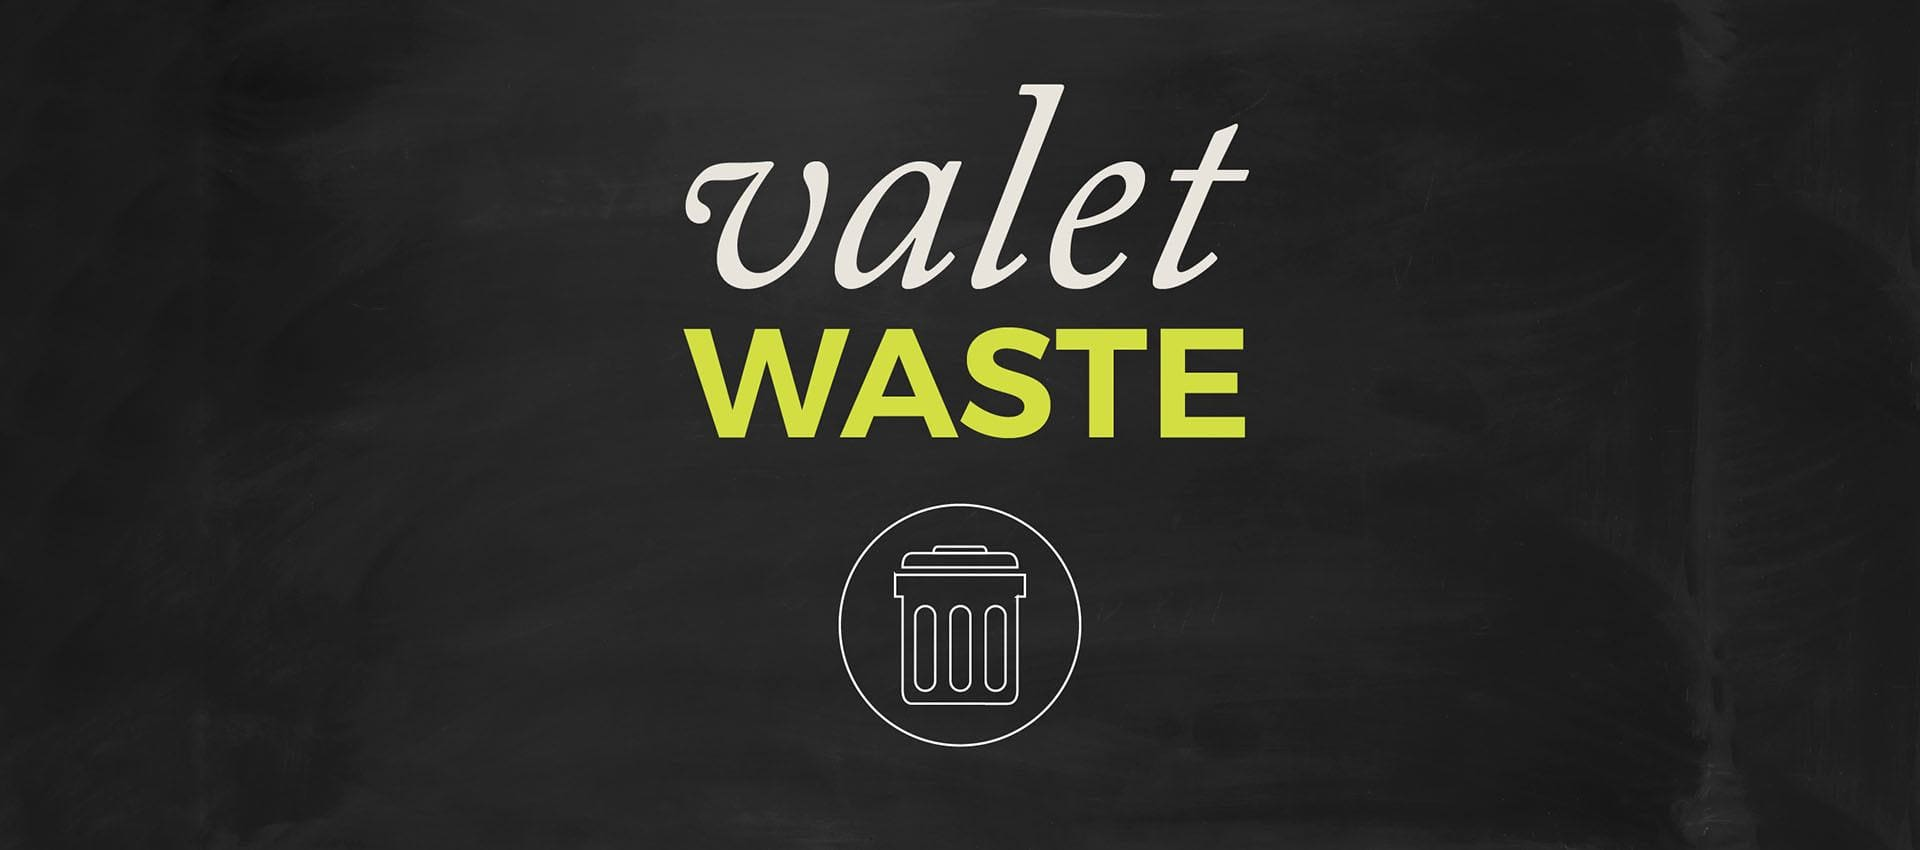 Don't waste time with garbage. Let us handle it at Valley Ridge Apartment Homes in Martinez